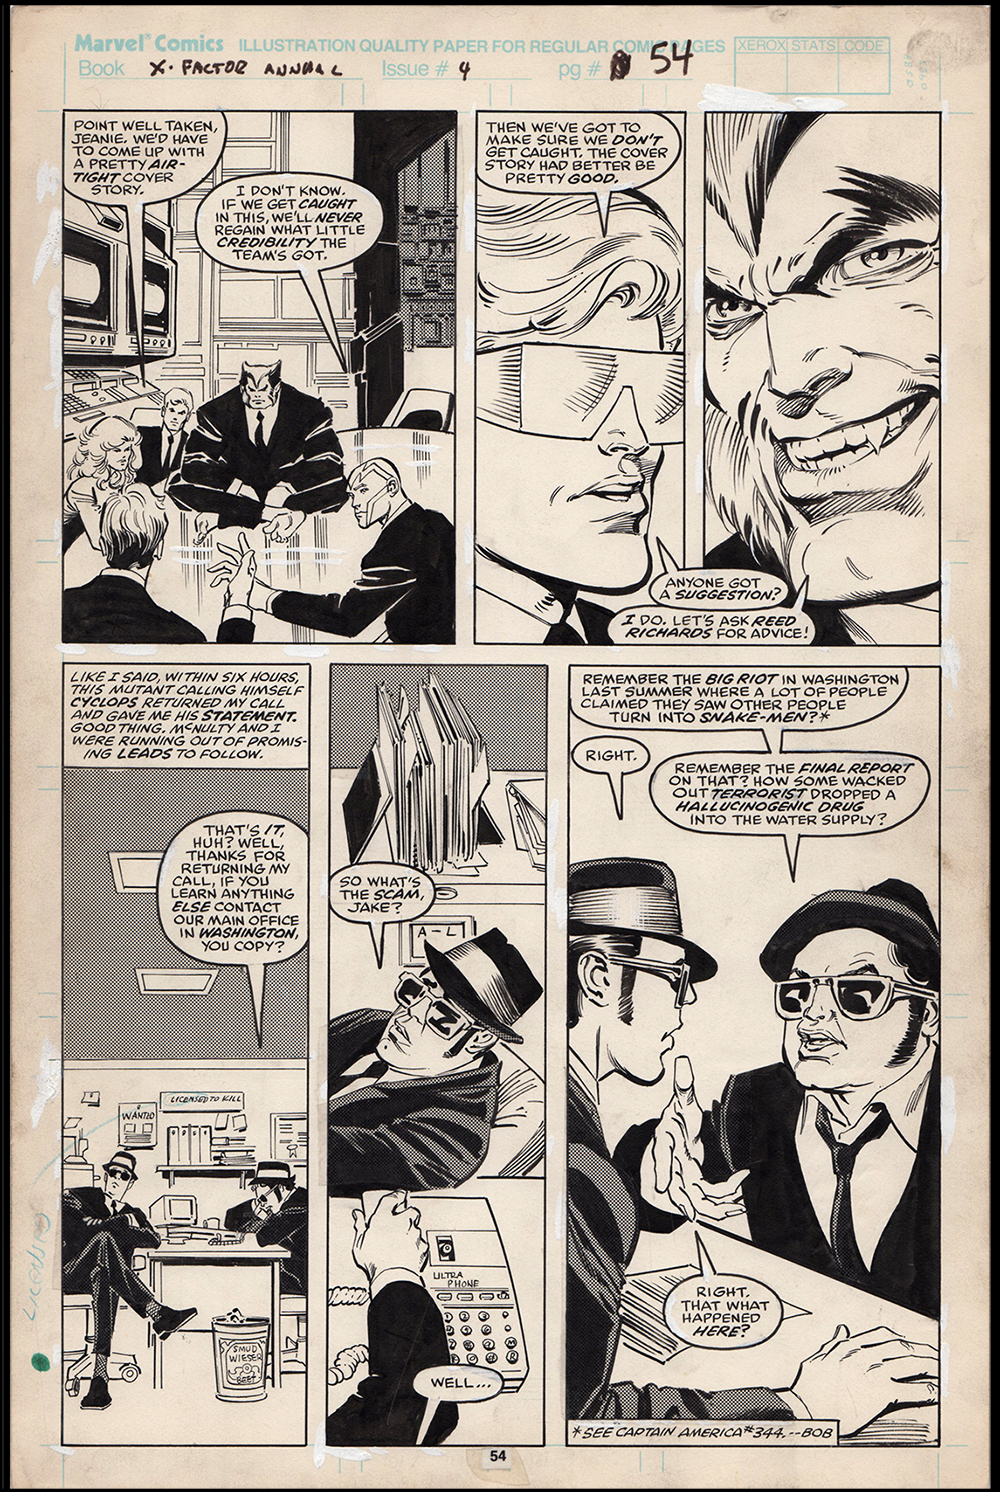 Image: X-Factor Annual #4 Art by Jim Fern Blues Brothers